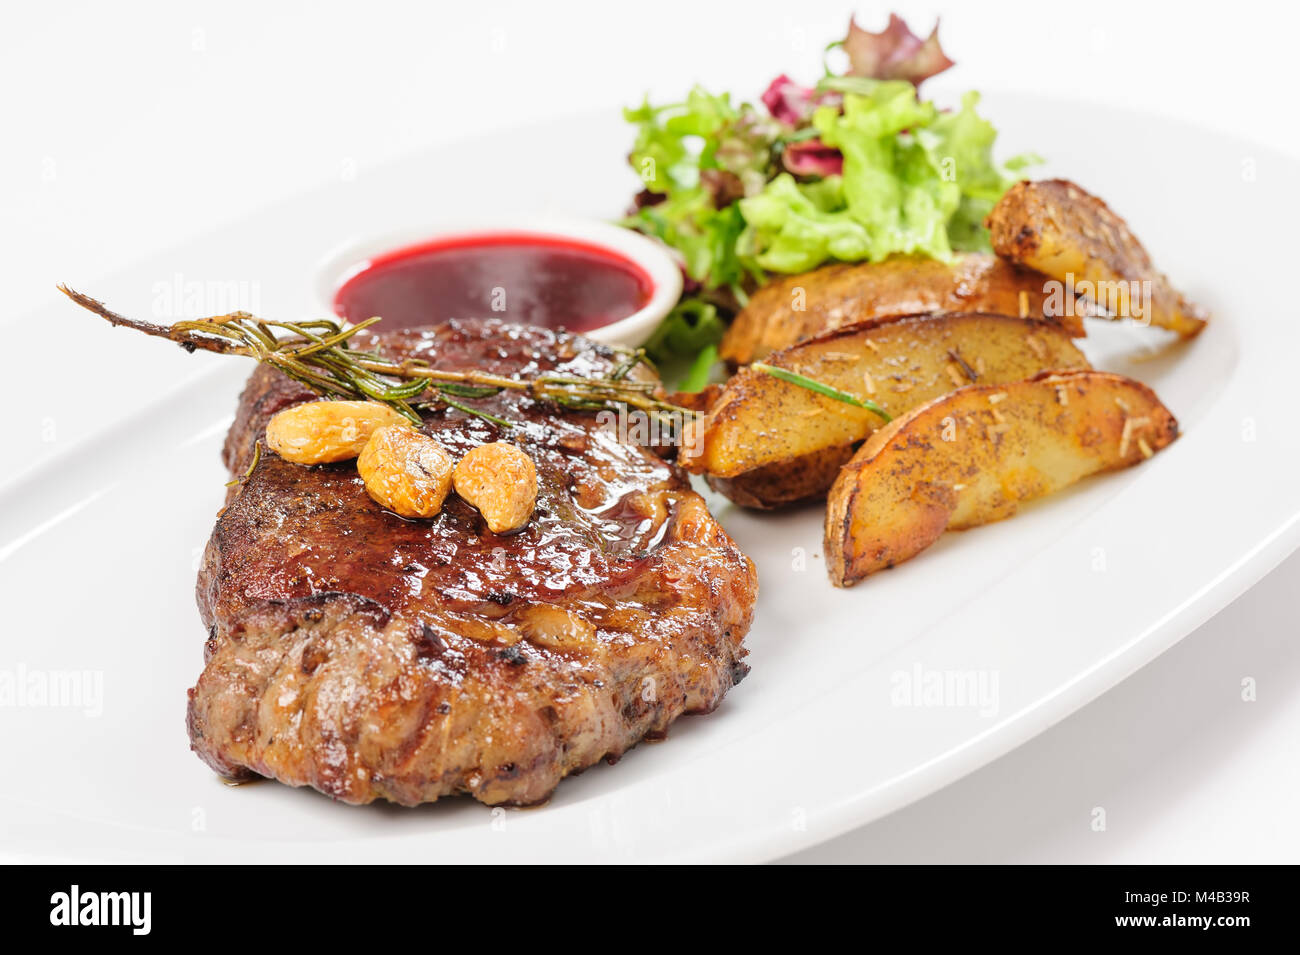 Thick juicy beef steak with potato and salad - Stock Image